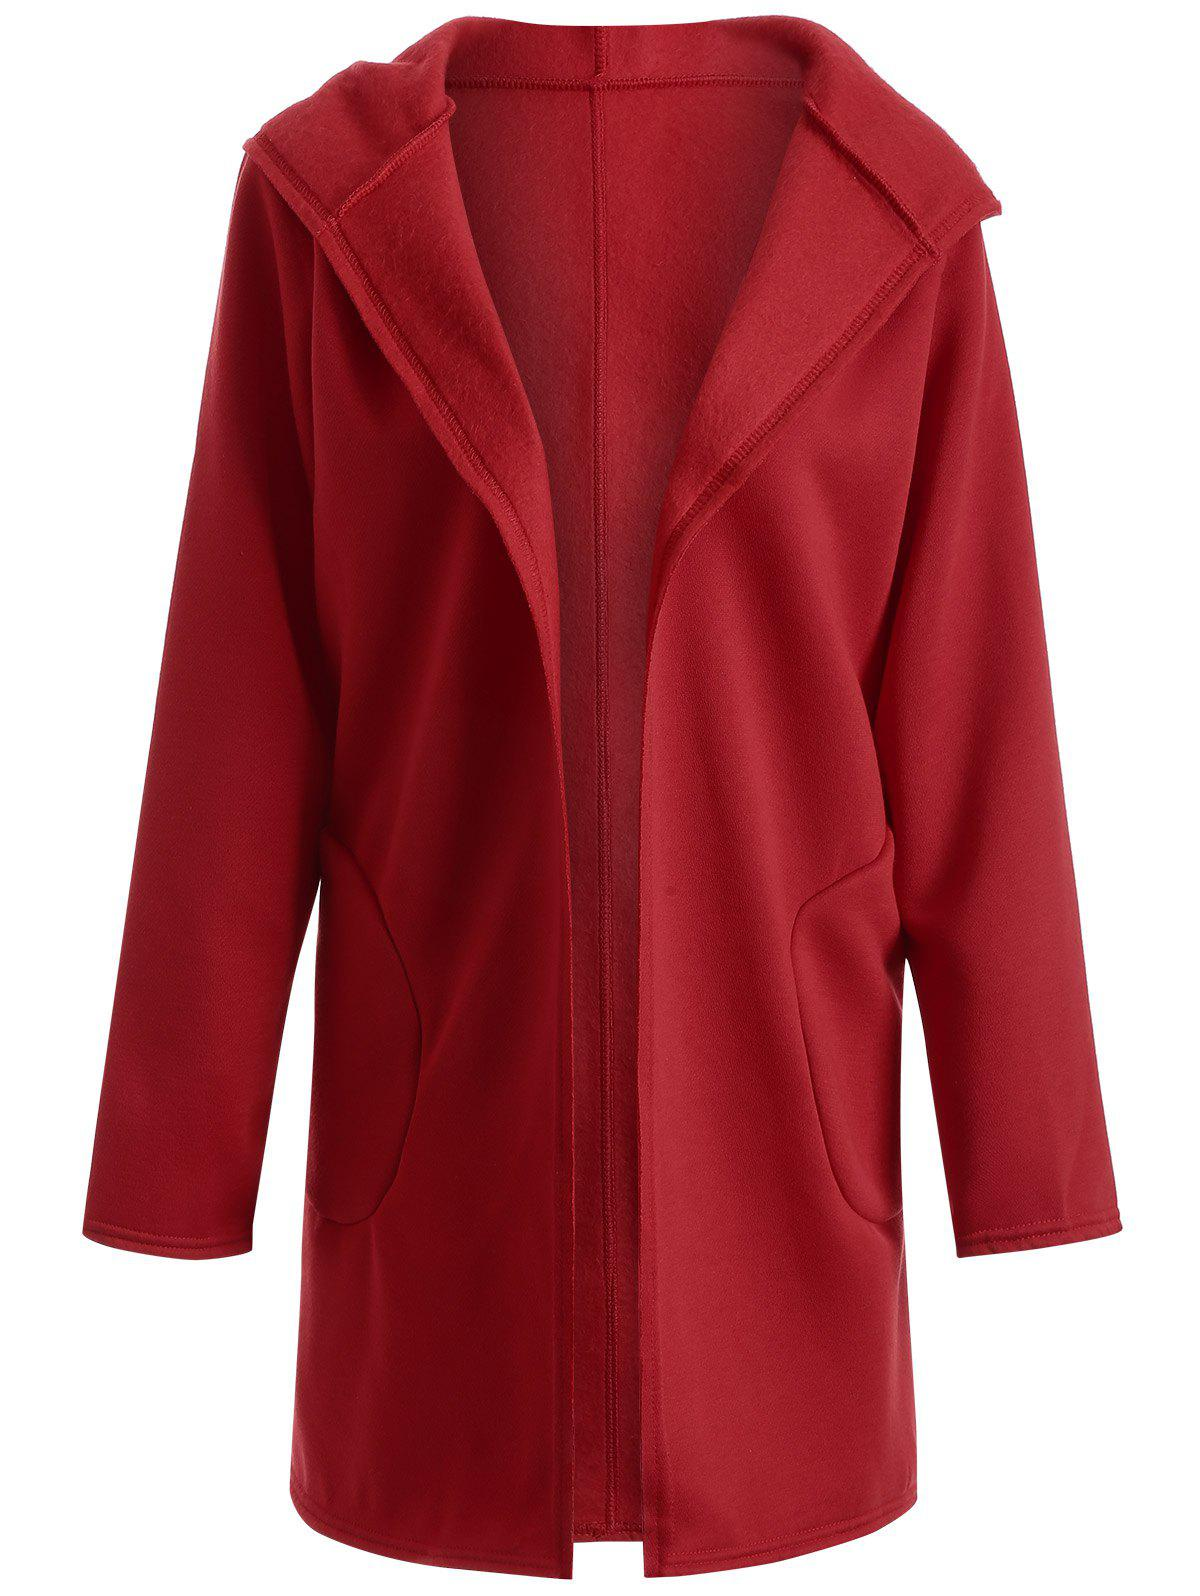 2018 Big Pocket Hooded Long Cardigan RED XL In Sweaters ...